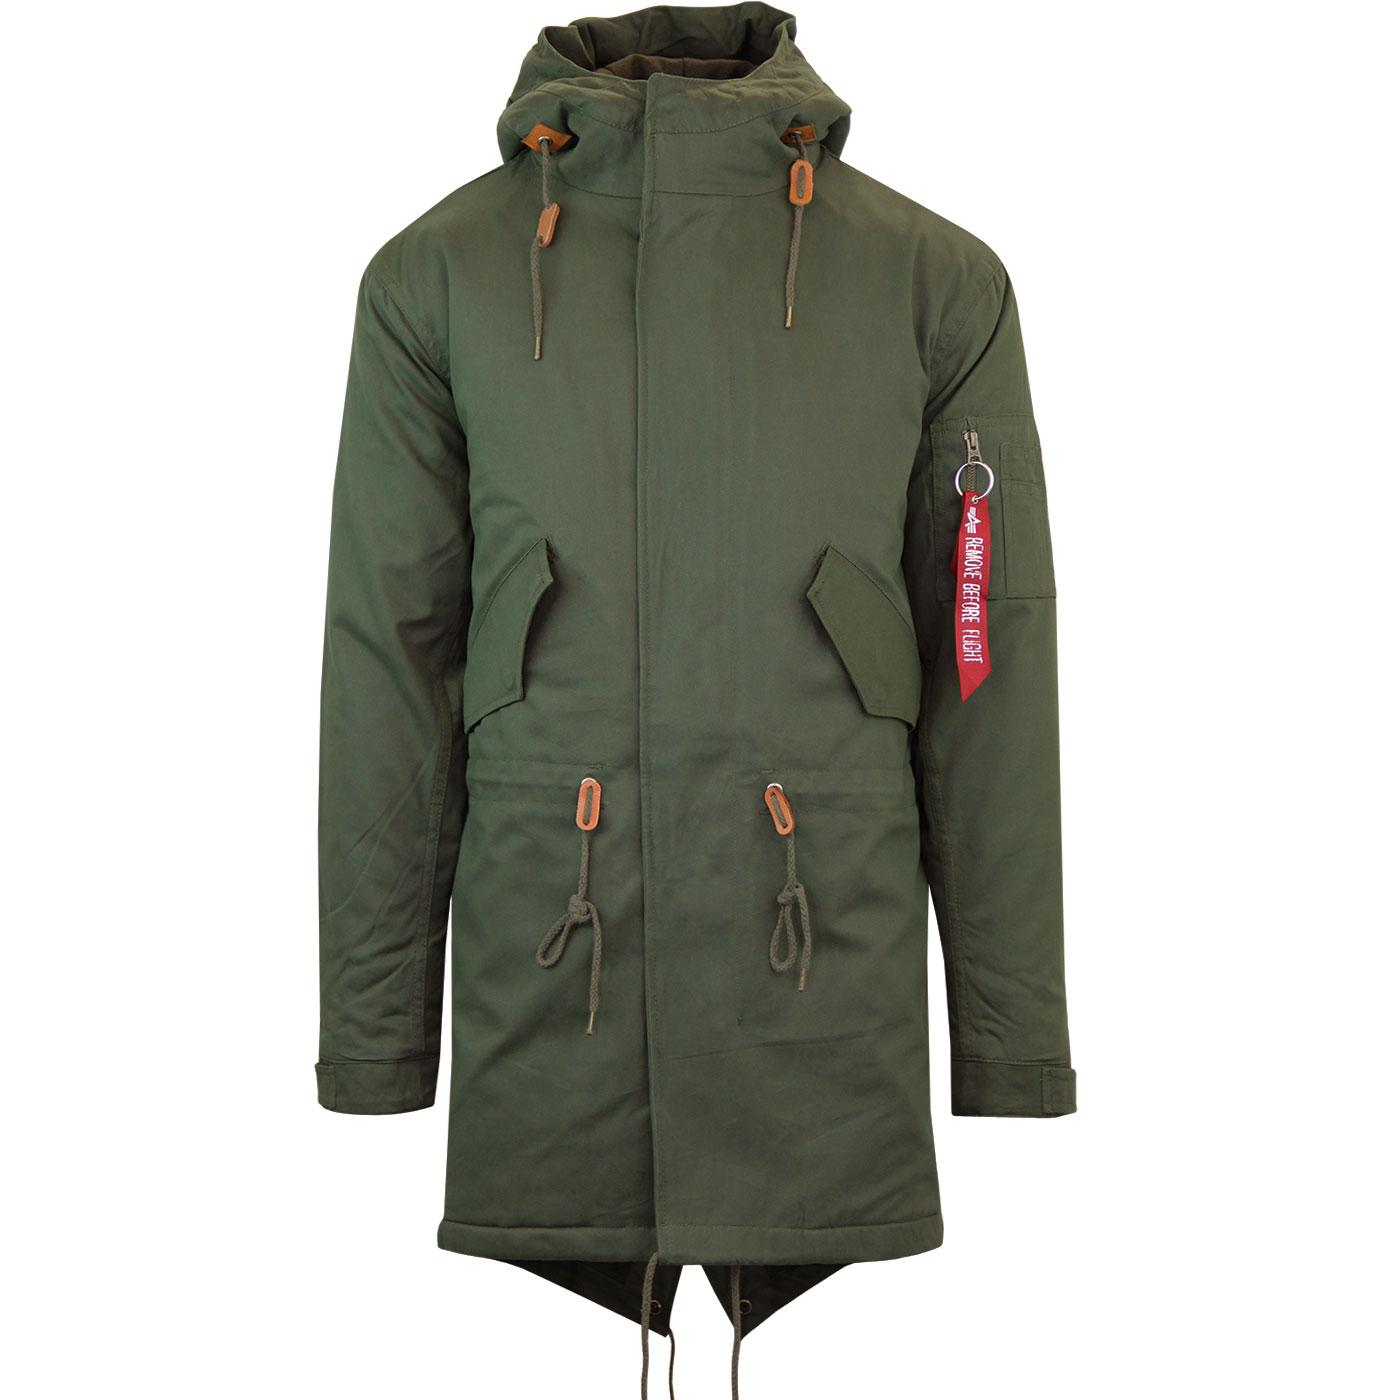 ALPHA INDUSTRIES M65 Vintage Hooded Fishtail Parka